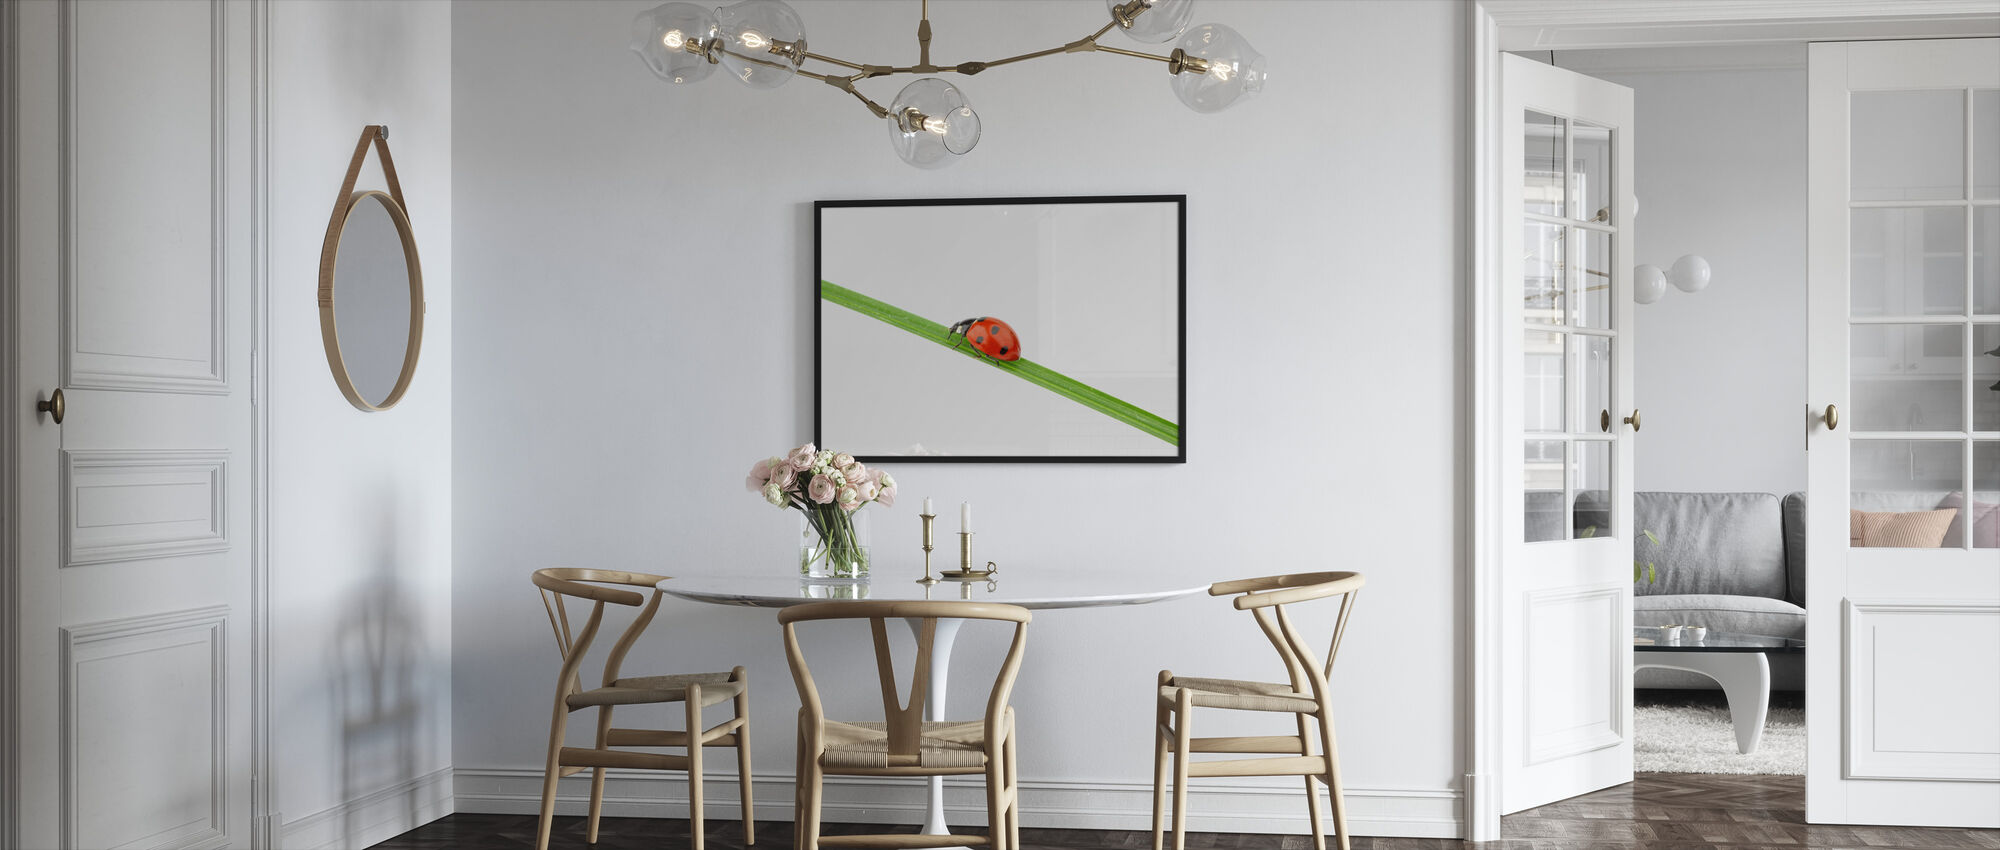 Ladybug on a Straw - Framed print - Kitchen